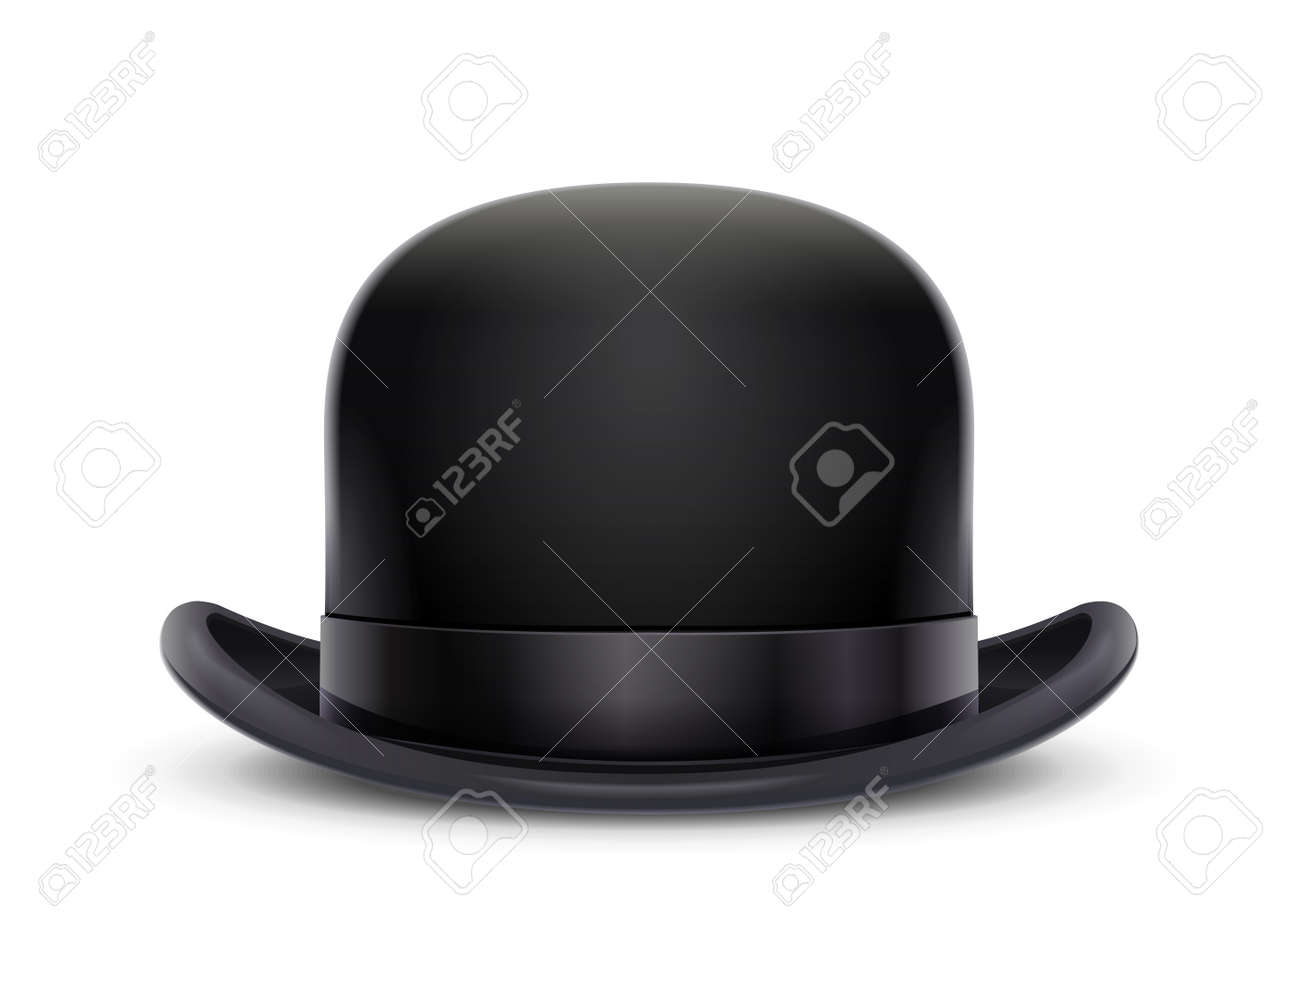 Vintage classic bowler hat. Stylish headgear for gentleman. Retro wear accessory. Male fashion. Trendy clothes. Isolated white background. Eps10 vector illustration. - 125223081